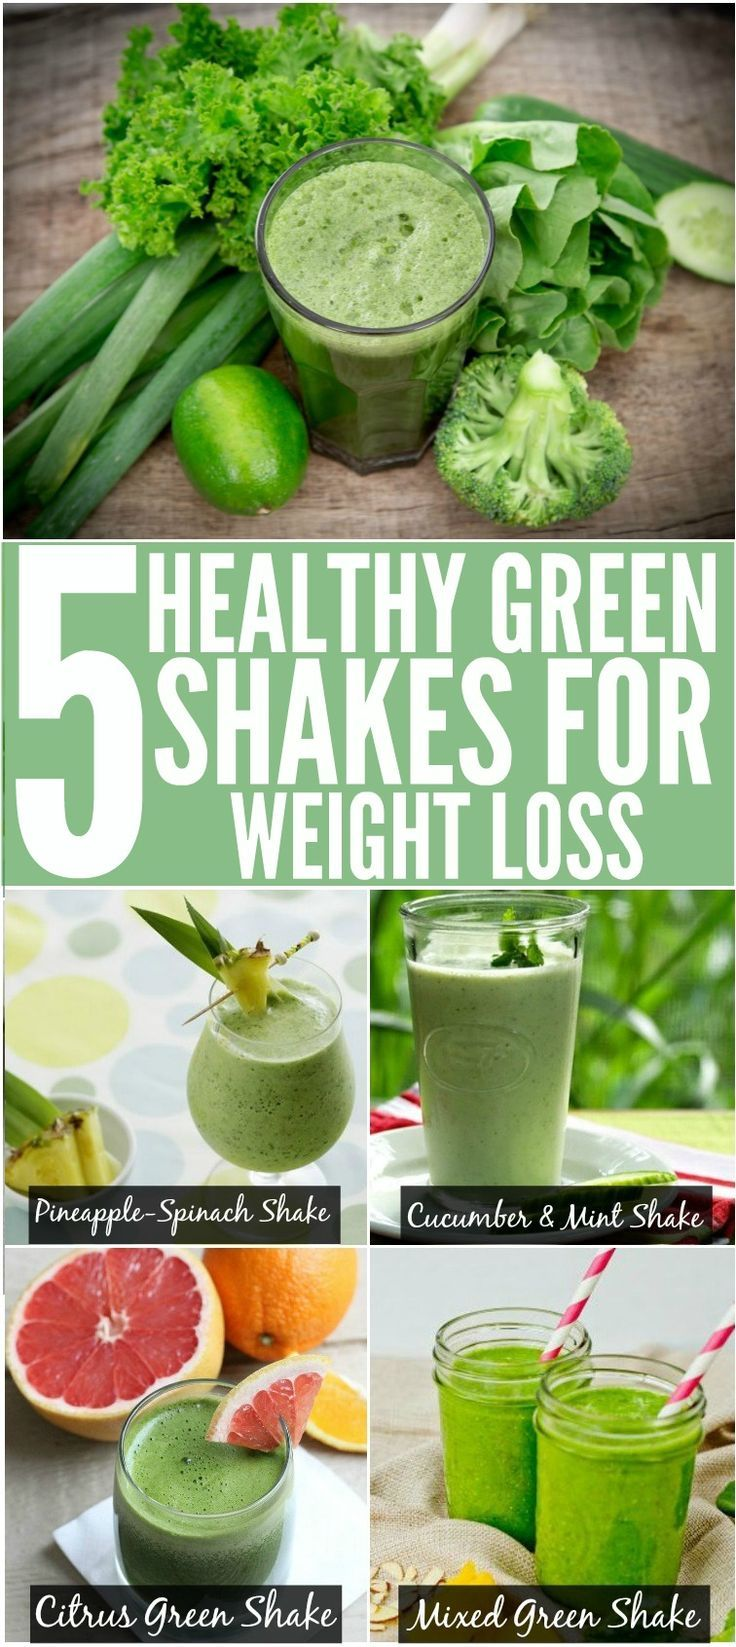 5 Shakes For Weight Loss Pictures Photos and Images for ...